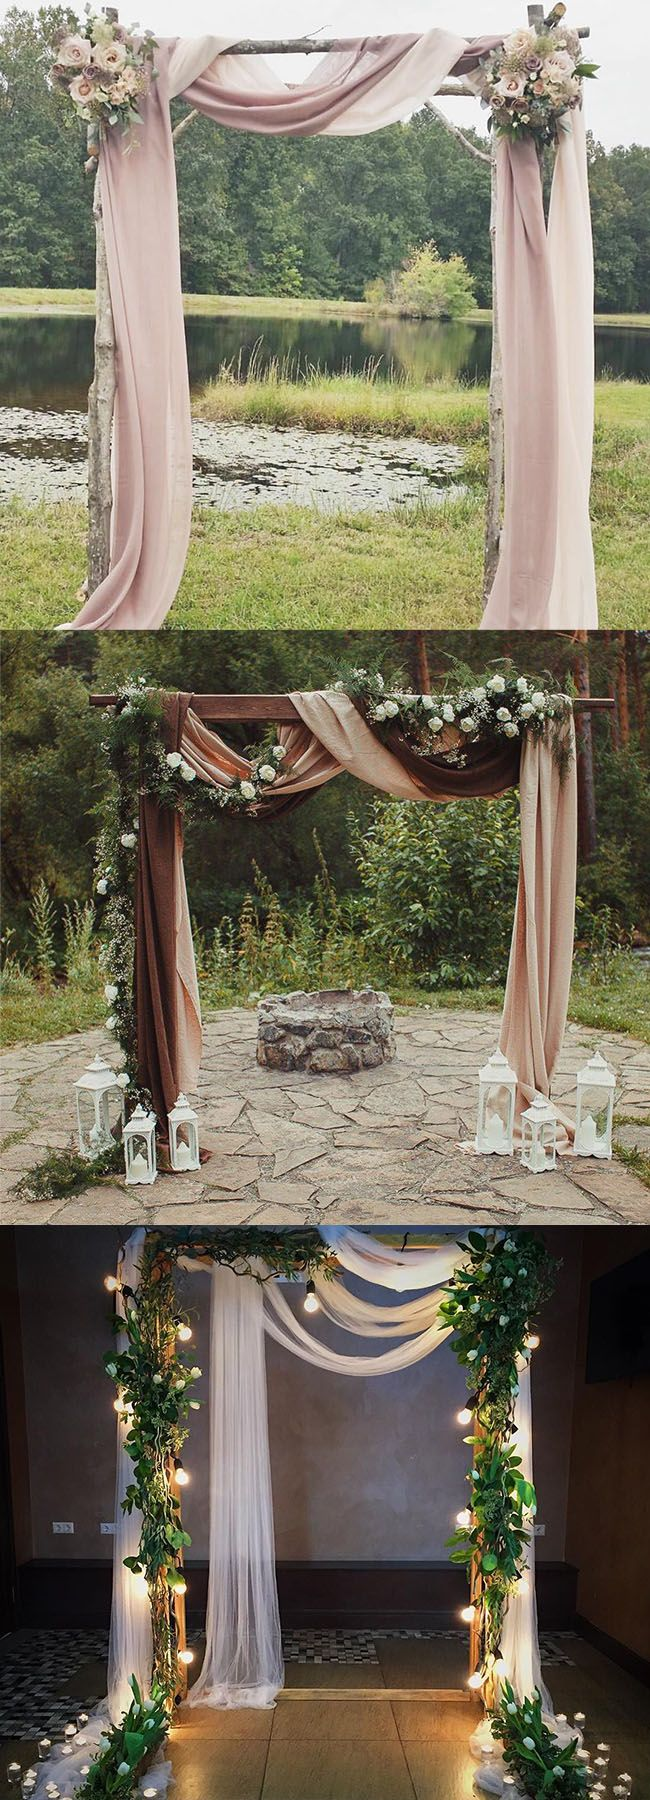 Wedding room decoration ideas 2018   Inspirational Wedding Ceremony Arbor u Arch Ideas in